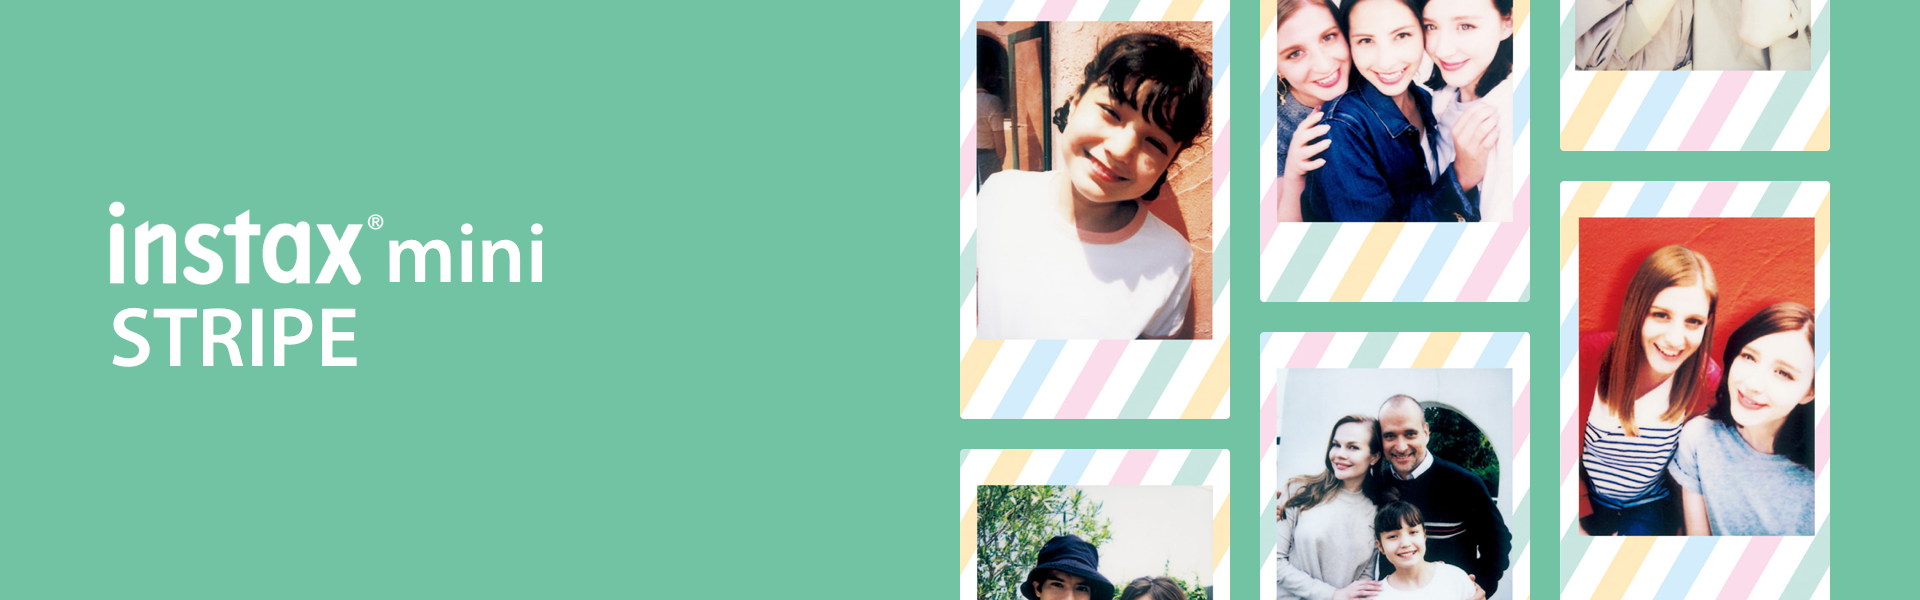 [photo] INSTAX Mini Stripe title and tiles of a kid, a family and a group of girlfriends on a green background